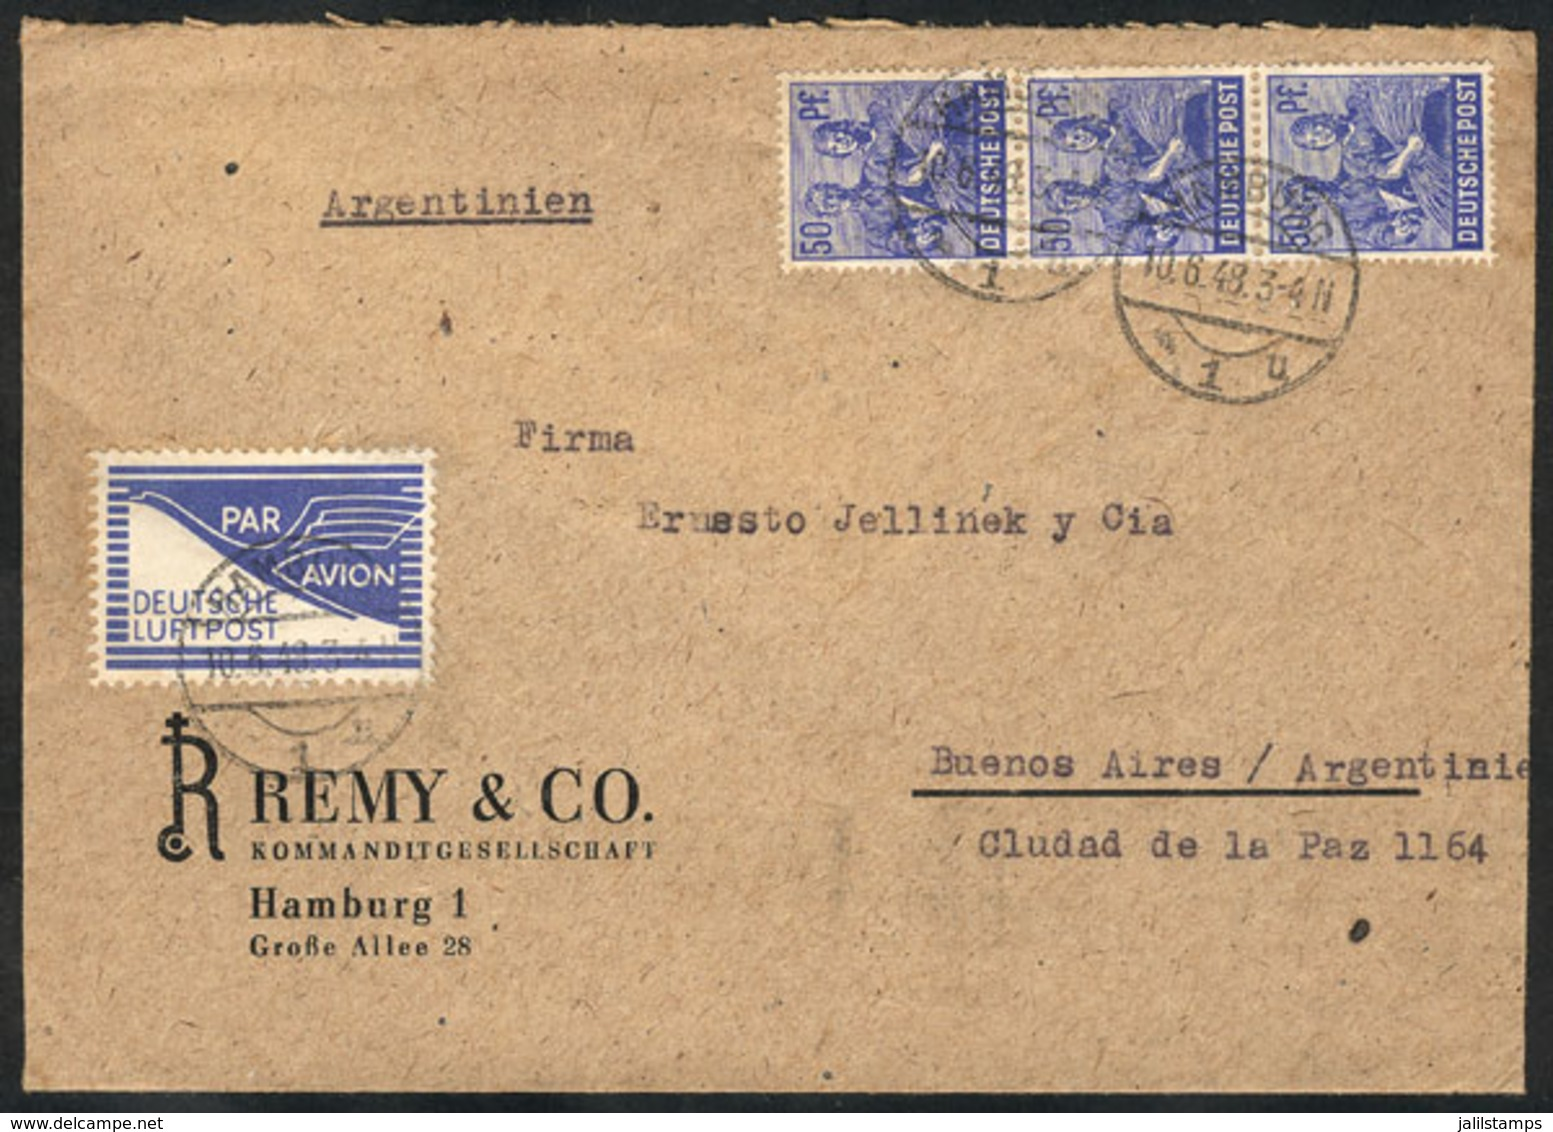 GERMANY: Airmail Cover Sent From Hamburg To Argentina On 10/JUN/1948 Franked With 150Pg., With A Special Airmail Label P - Allemagne